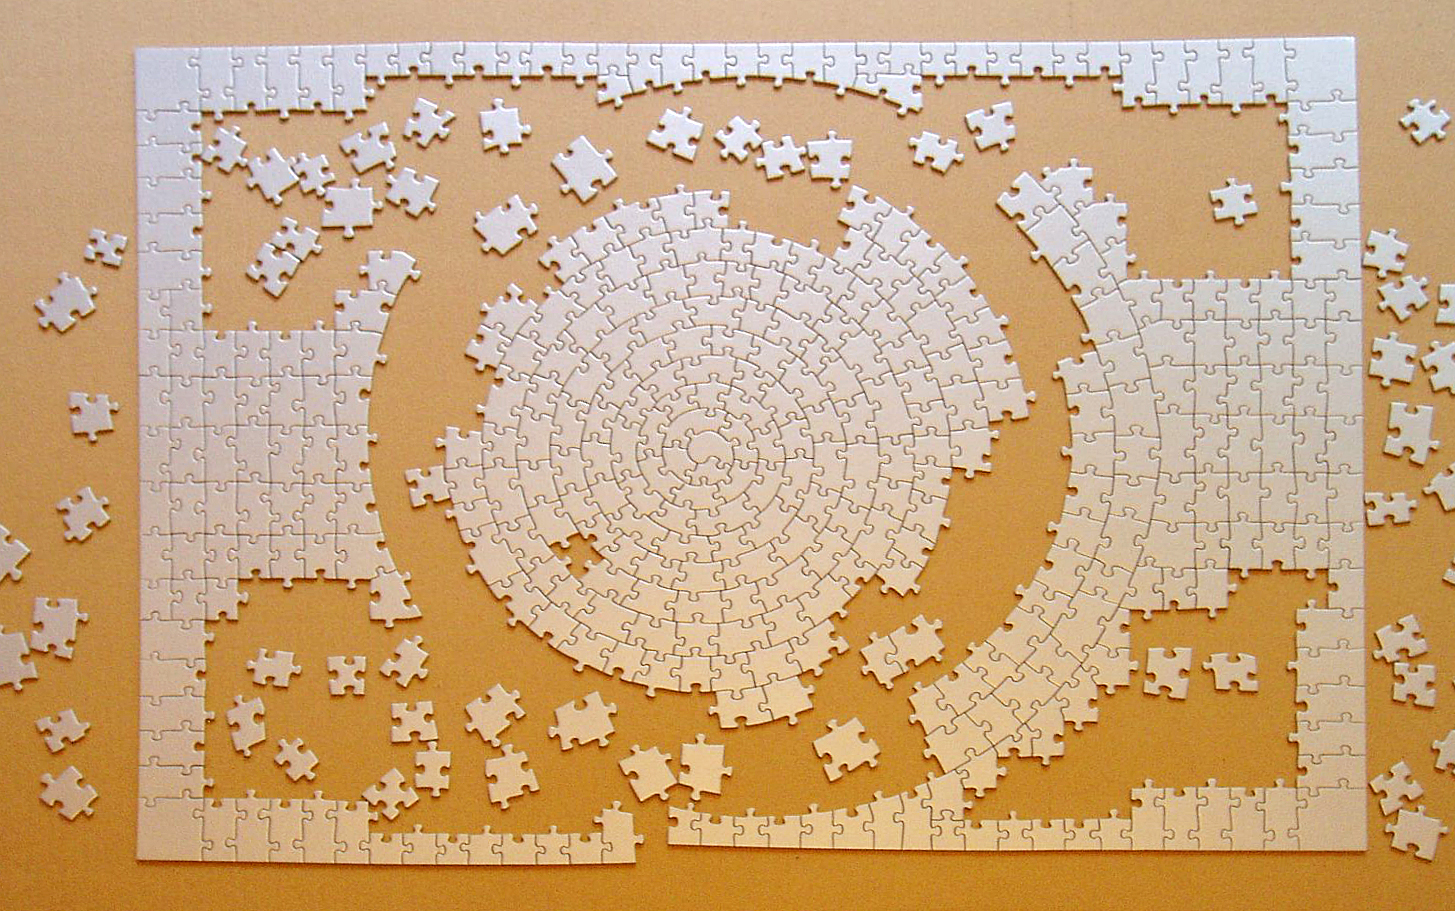 Photograph of a blank jigsaw puzzle where pieces differ only by shape.